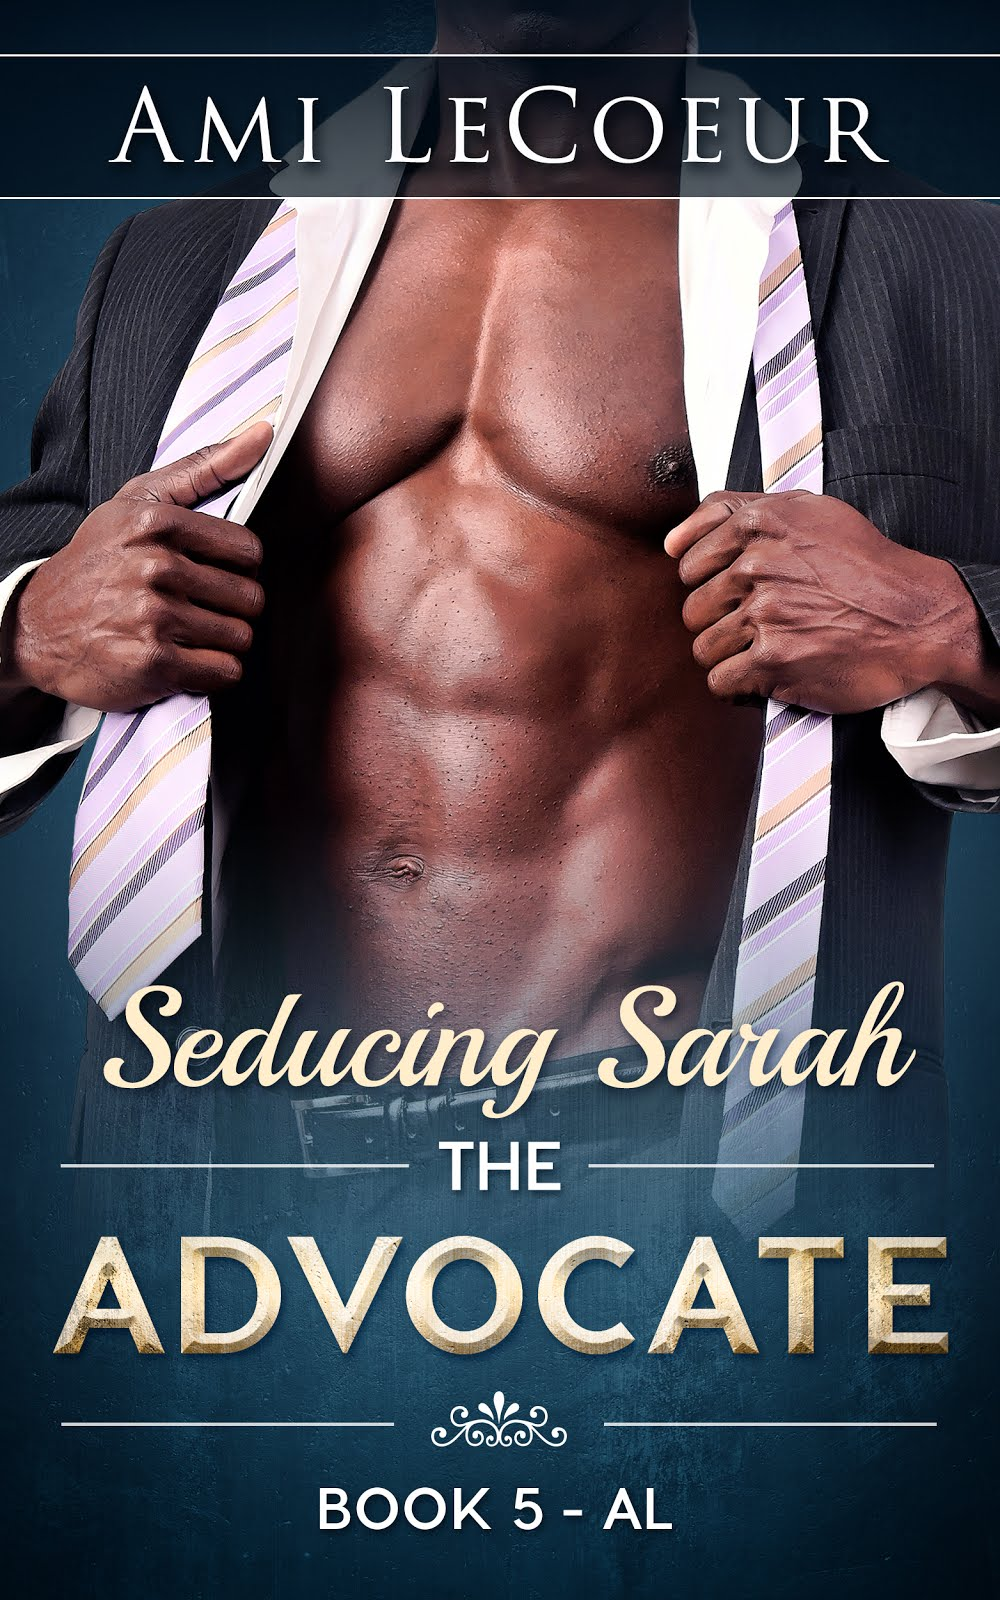 Seducing Sarah Book 5 - The Advocate: A